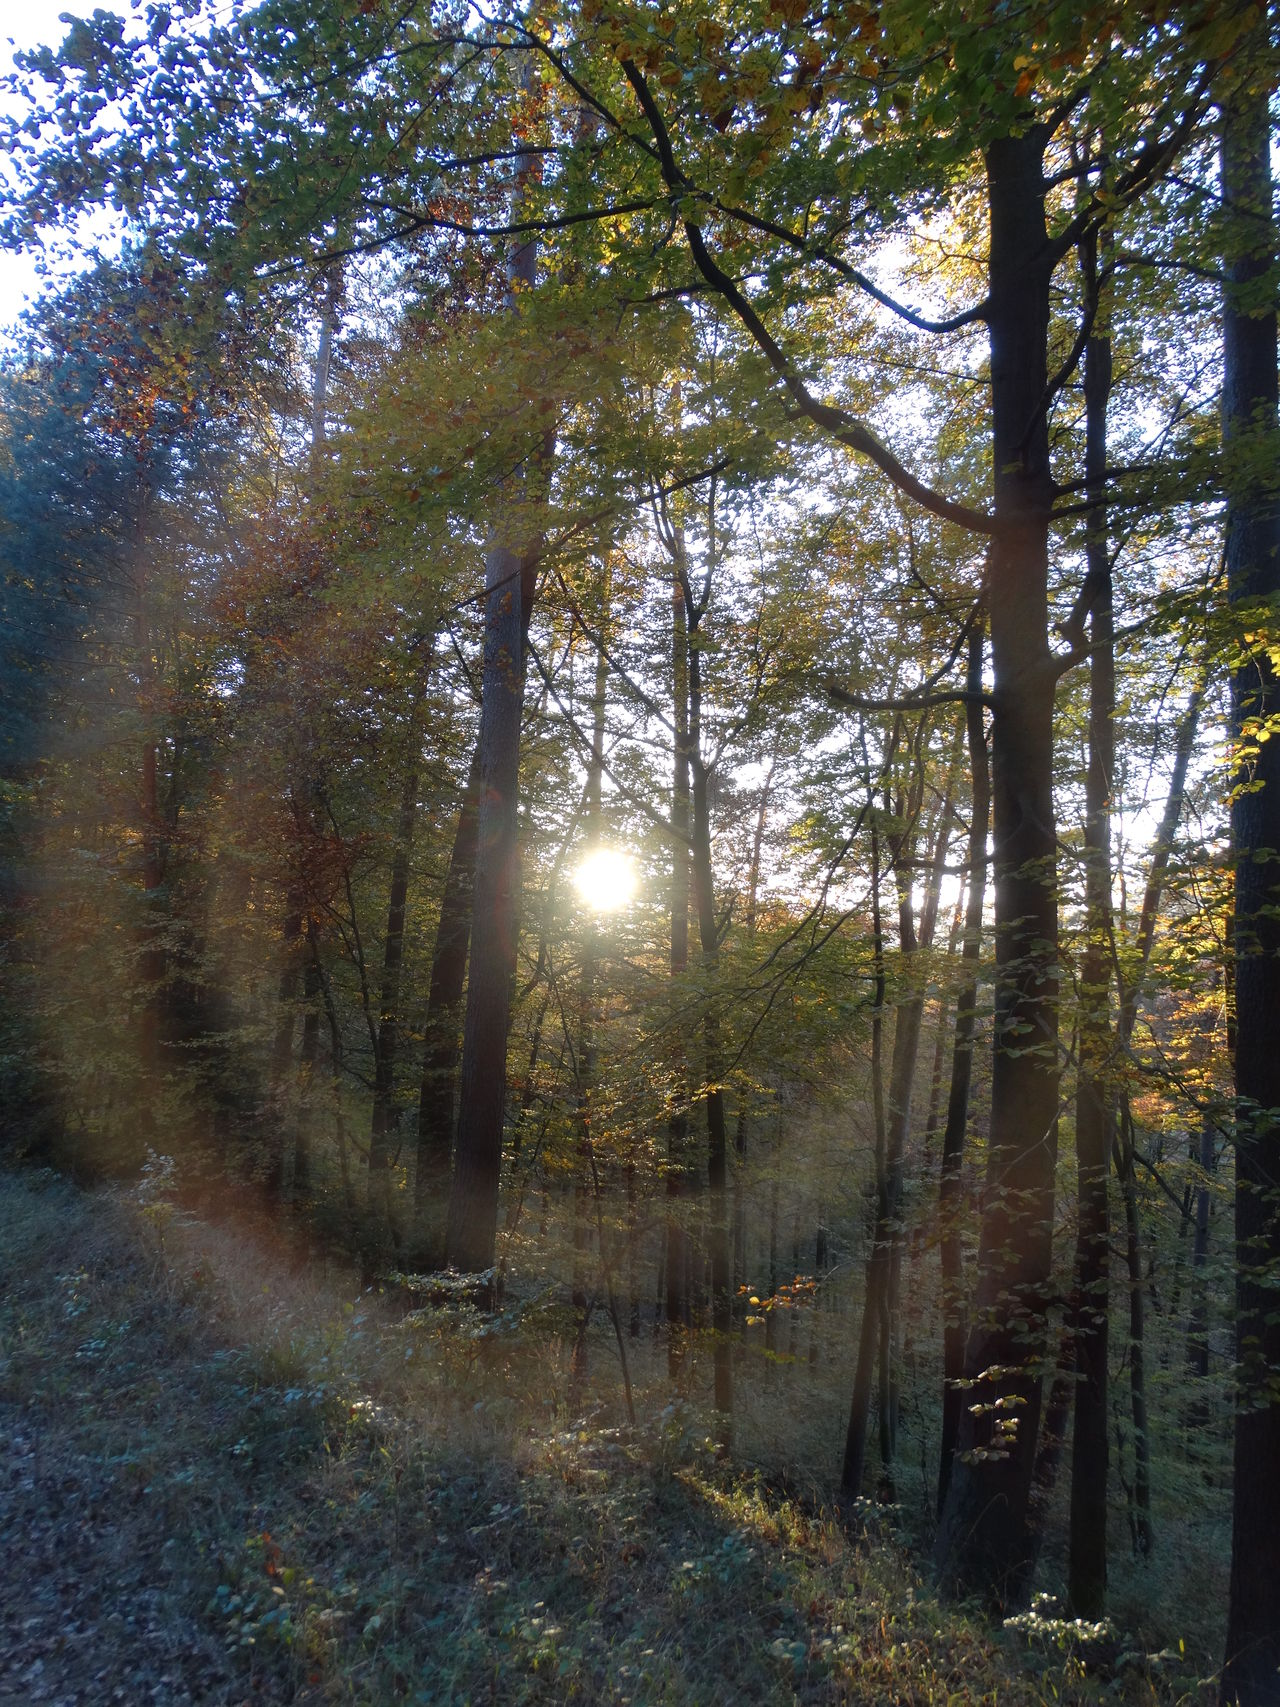 Pfälzerwald Nofilter Outdoors Sunlight Sun In Trees Sun In The Forest Corona Tree No People Nature Beauty In Nature Sunbeam Sonne Im Wald Forest Photography Forest Forestwalk Sonne Im Gesicht Wunderschön Beauty In Nature Sunny Day Wanderlust